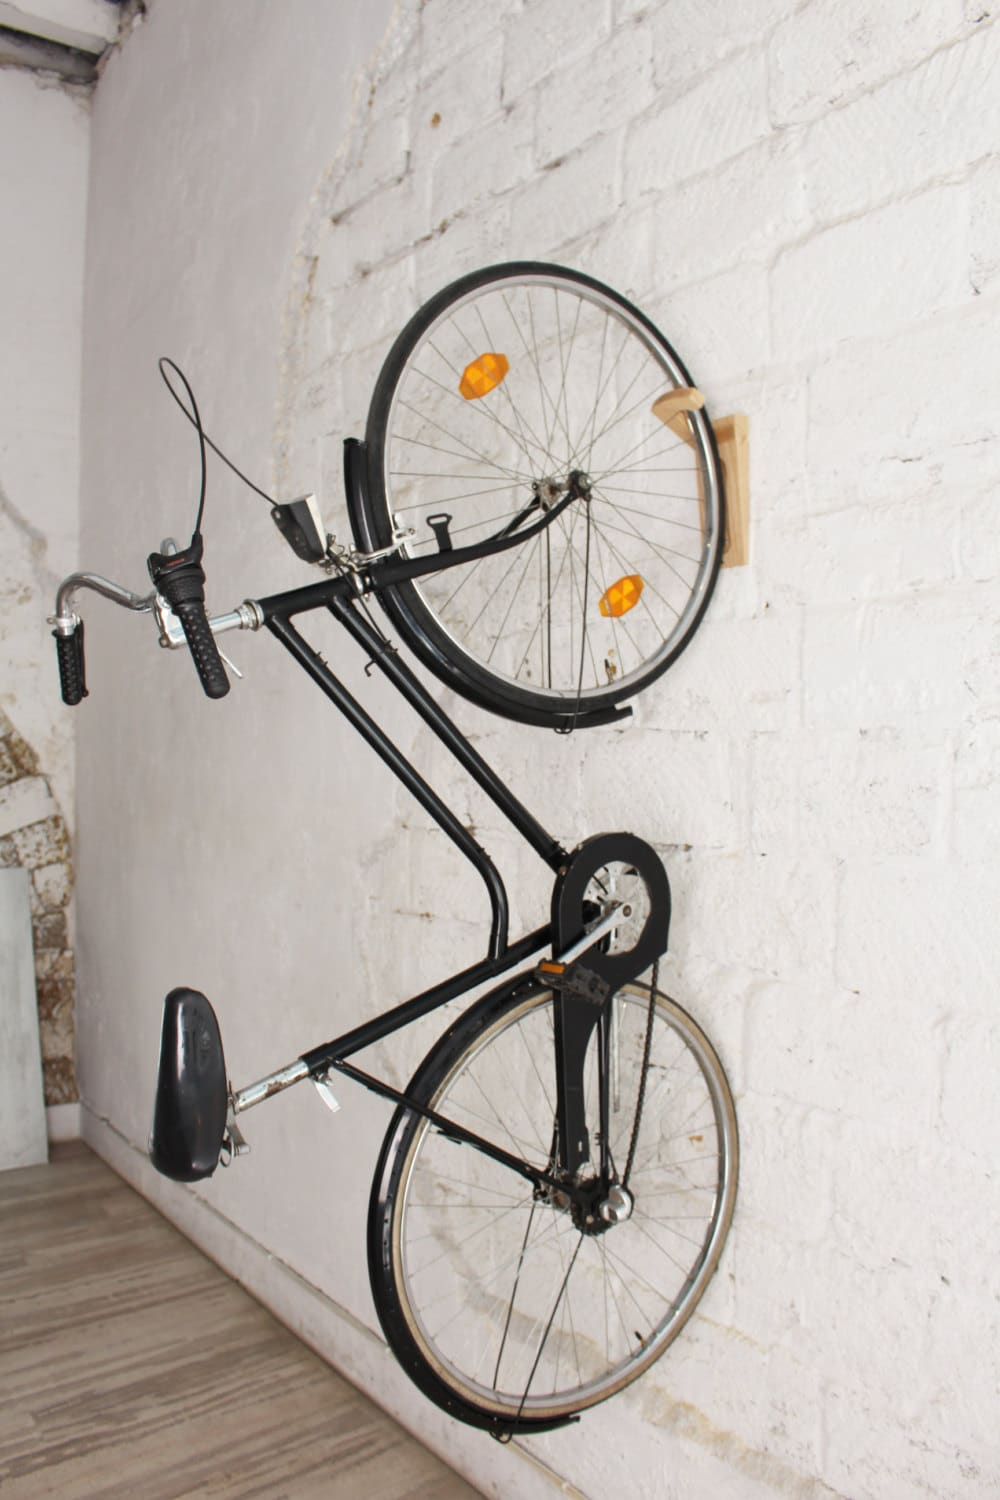 tokyo bike rack bike wall mount wooden wall hooks. Black Bedroom Furniture Sets. Home Design Ideas